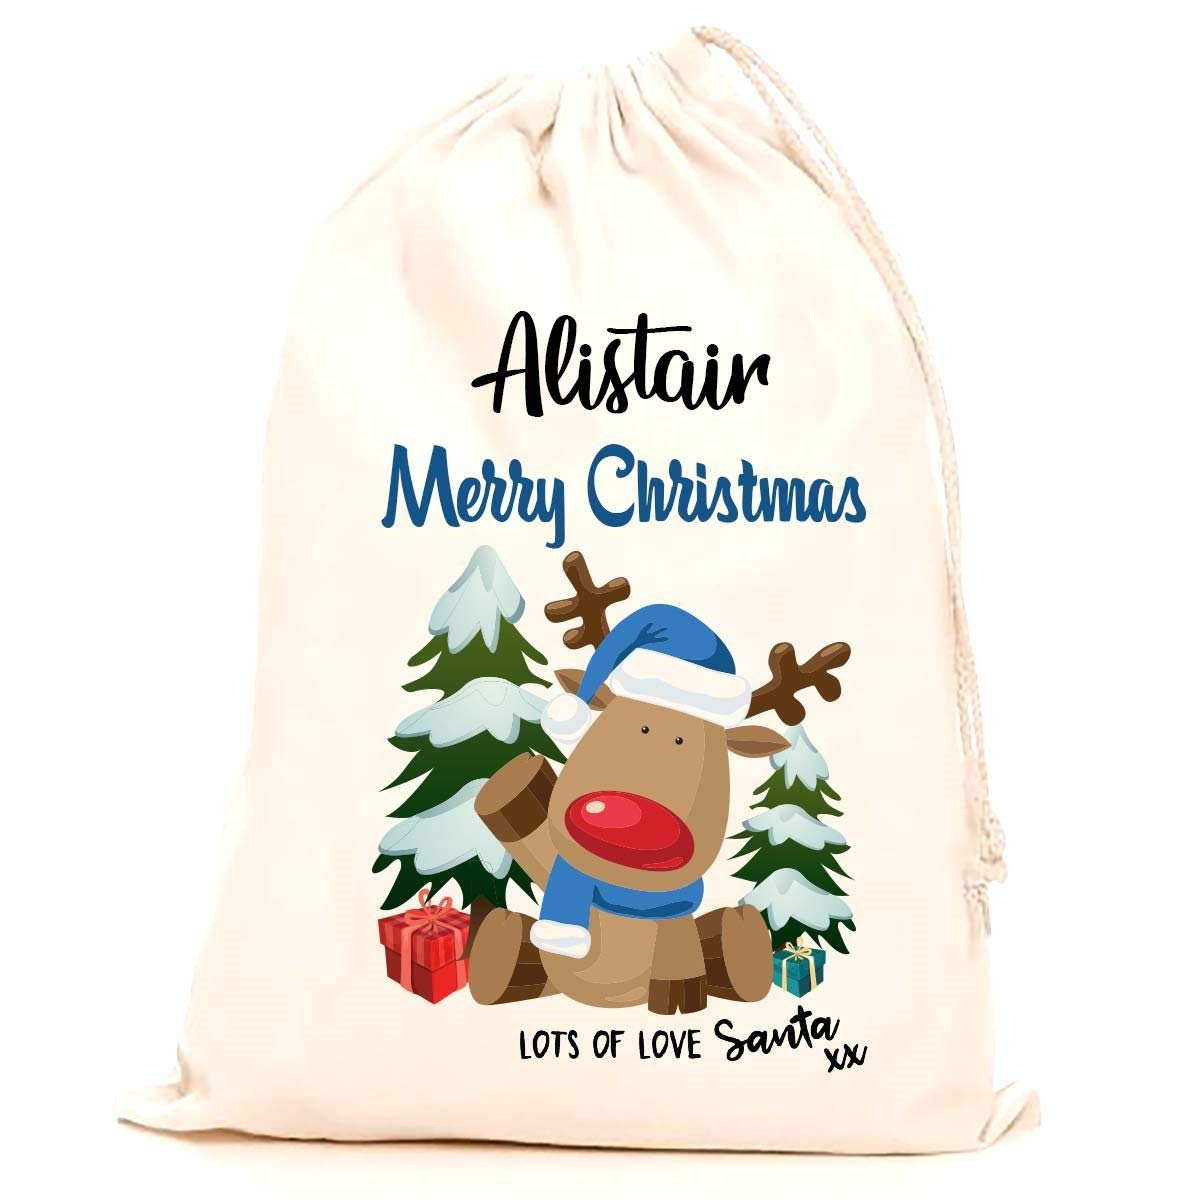 Children making it the perfect keepsake xmas gift//present. 75x50cm Kids Treat Me Suite Alistair personalised name Christmas santa sack 100/% Cotton Large stocking printed with a blue reindeer